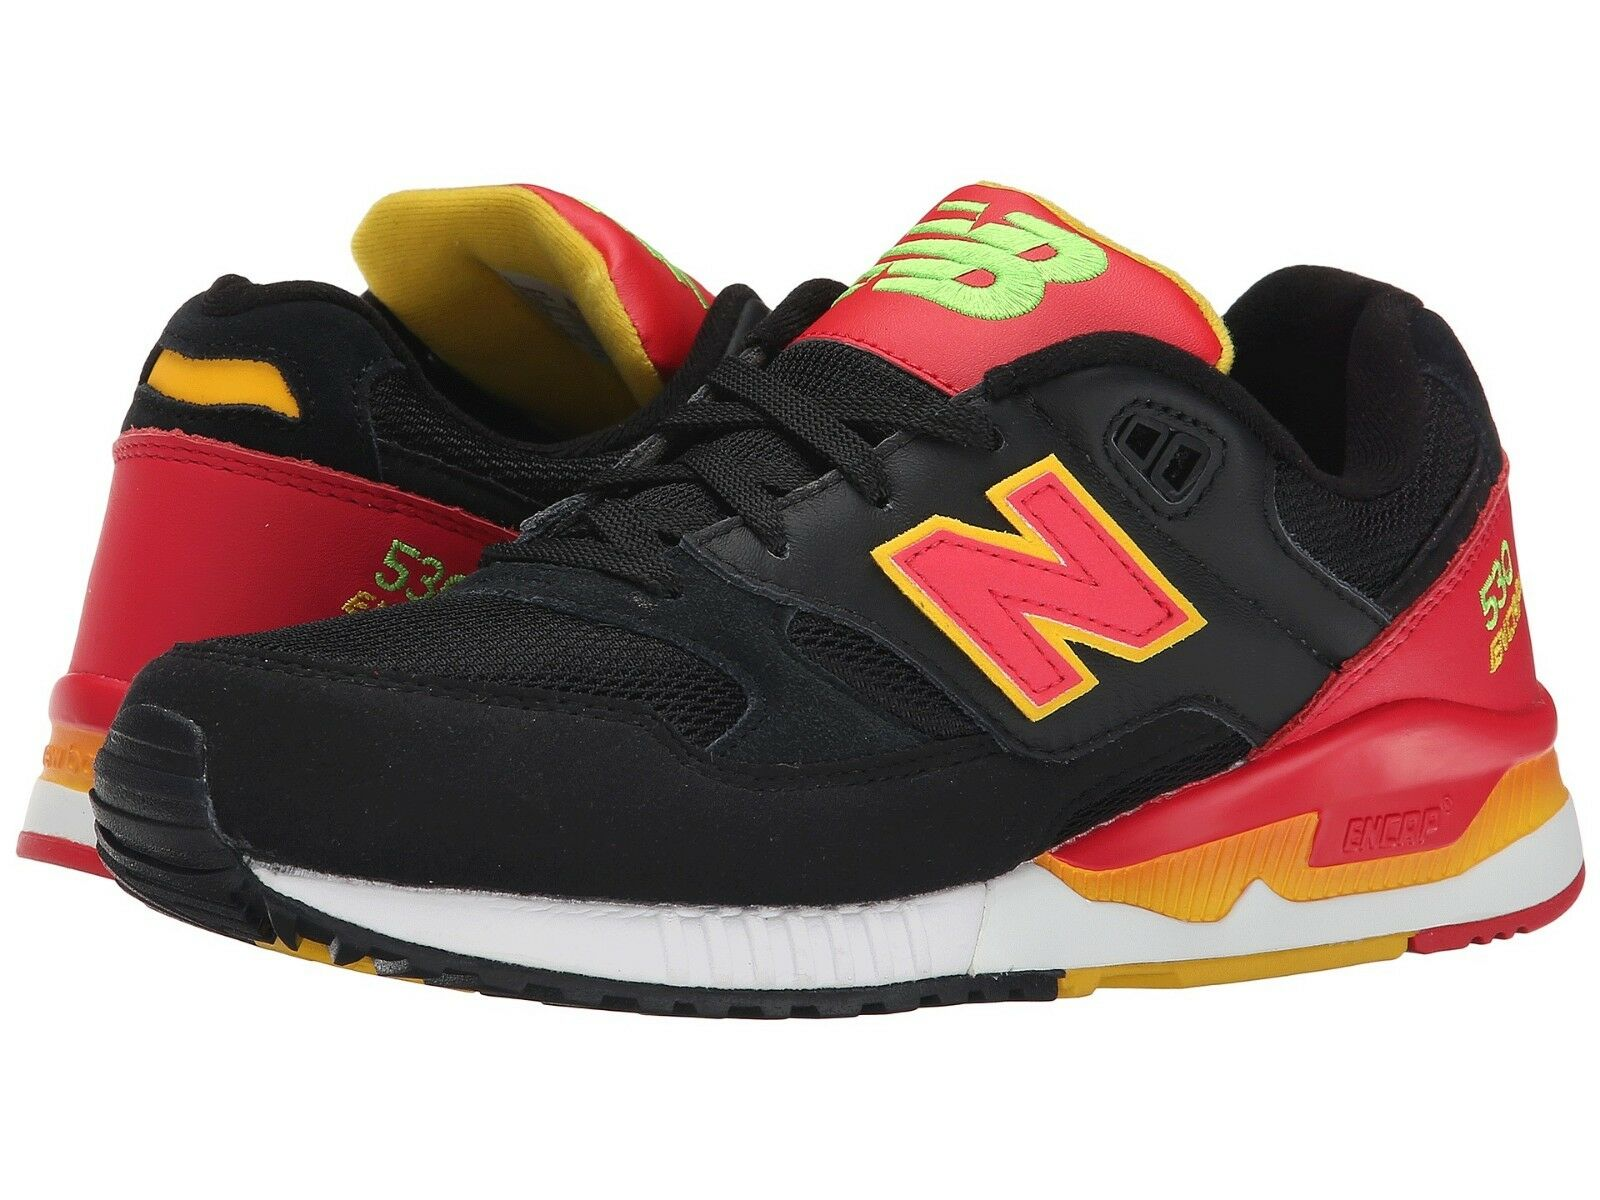 New  Mens New Balance 530 90's Remix Running Sneakers shoes - limited sizes